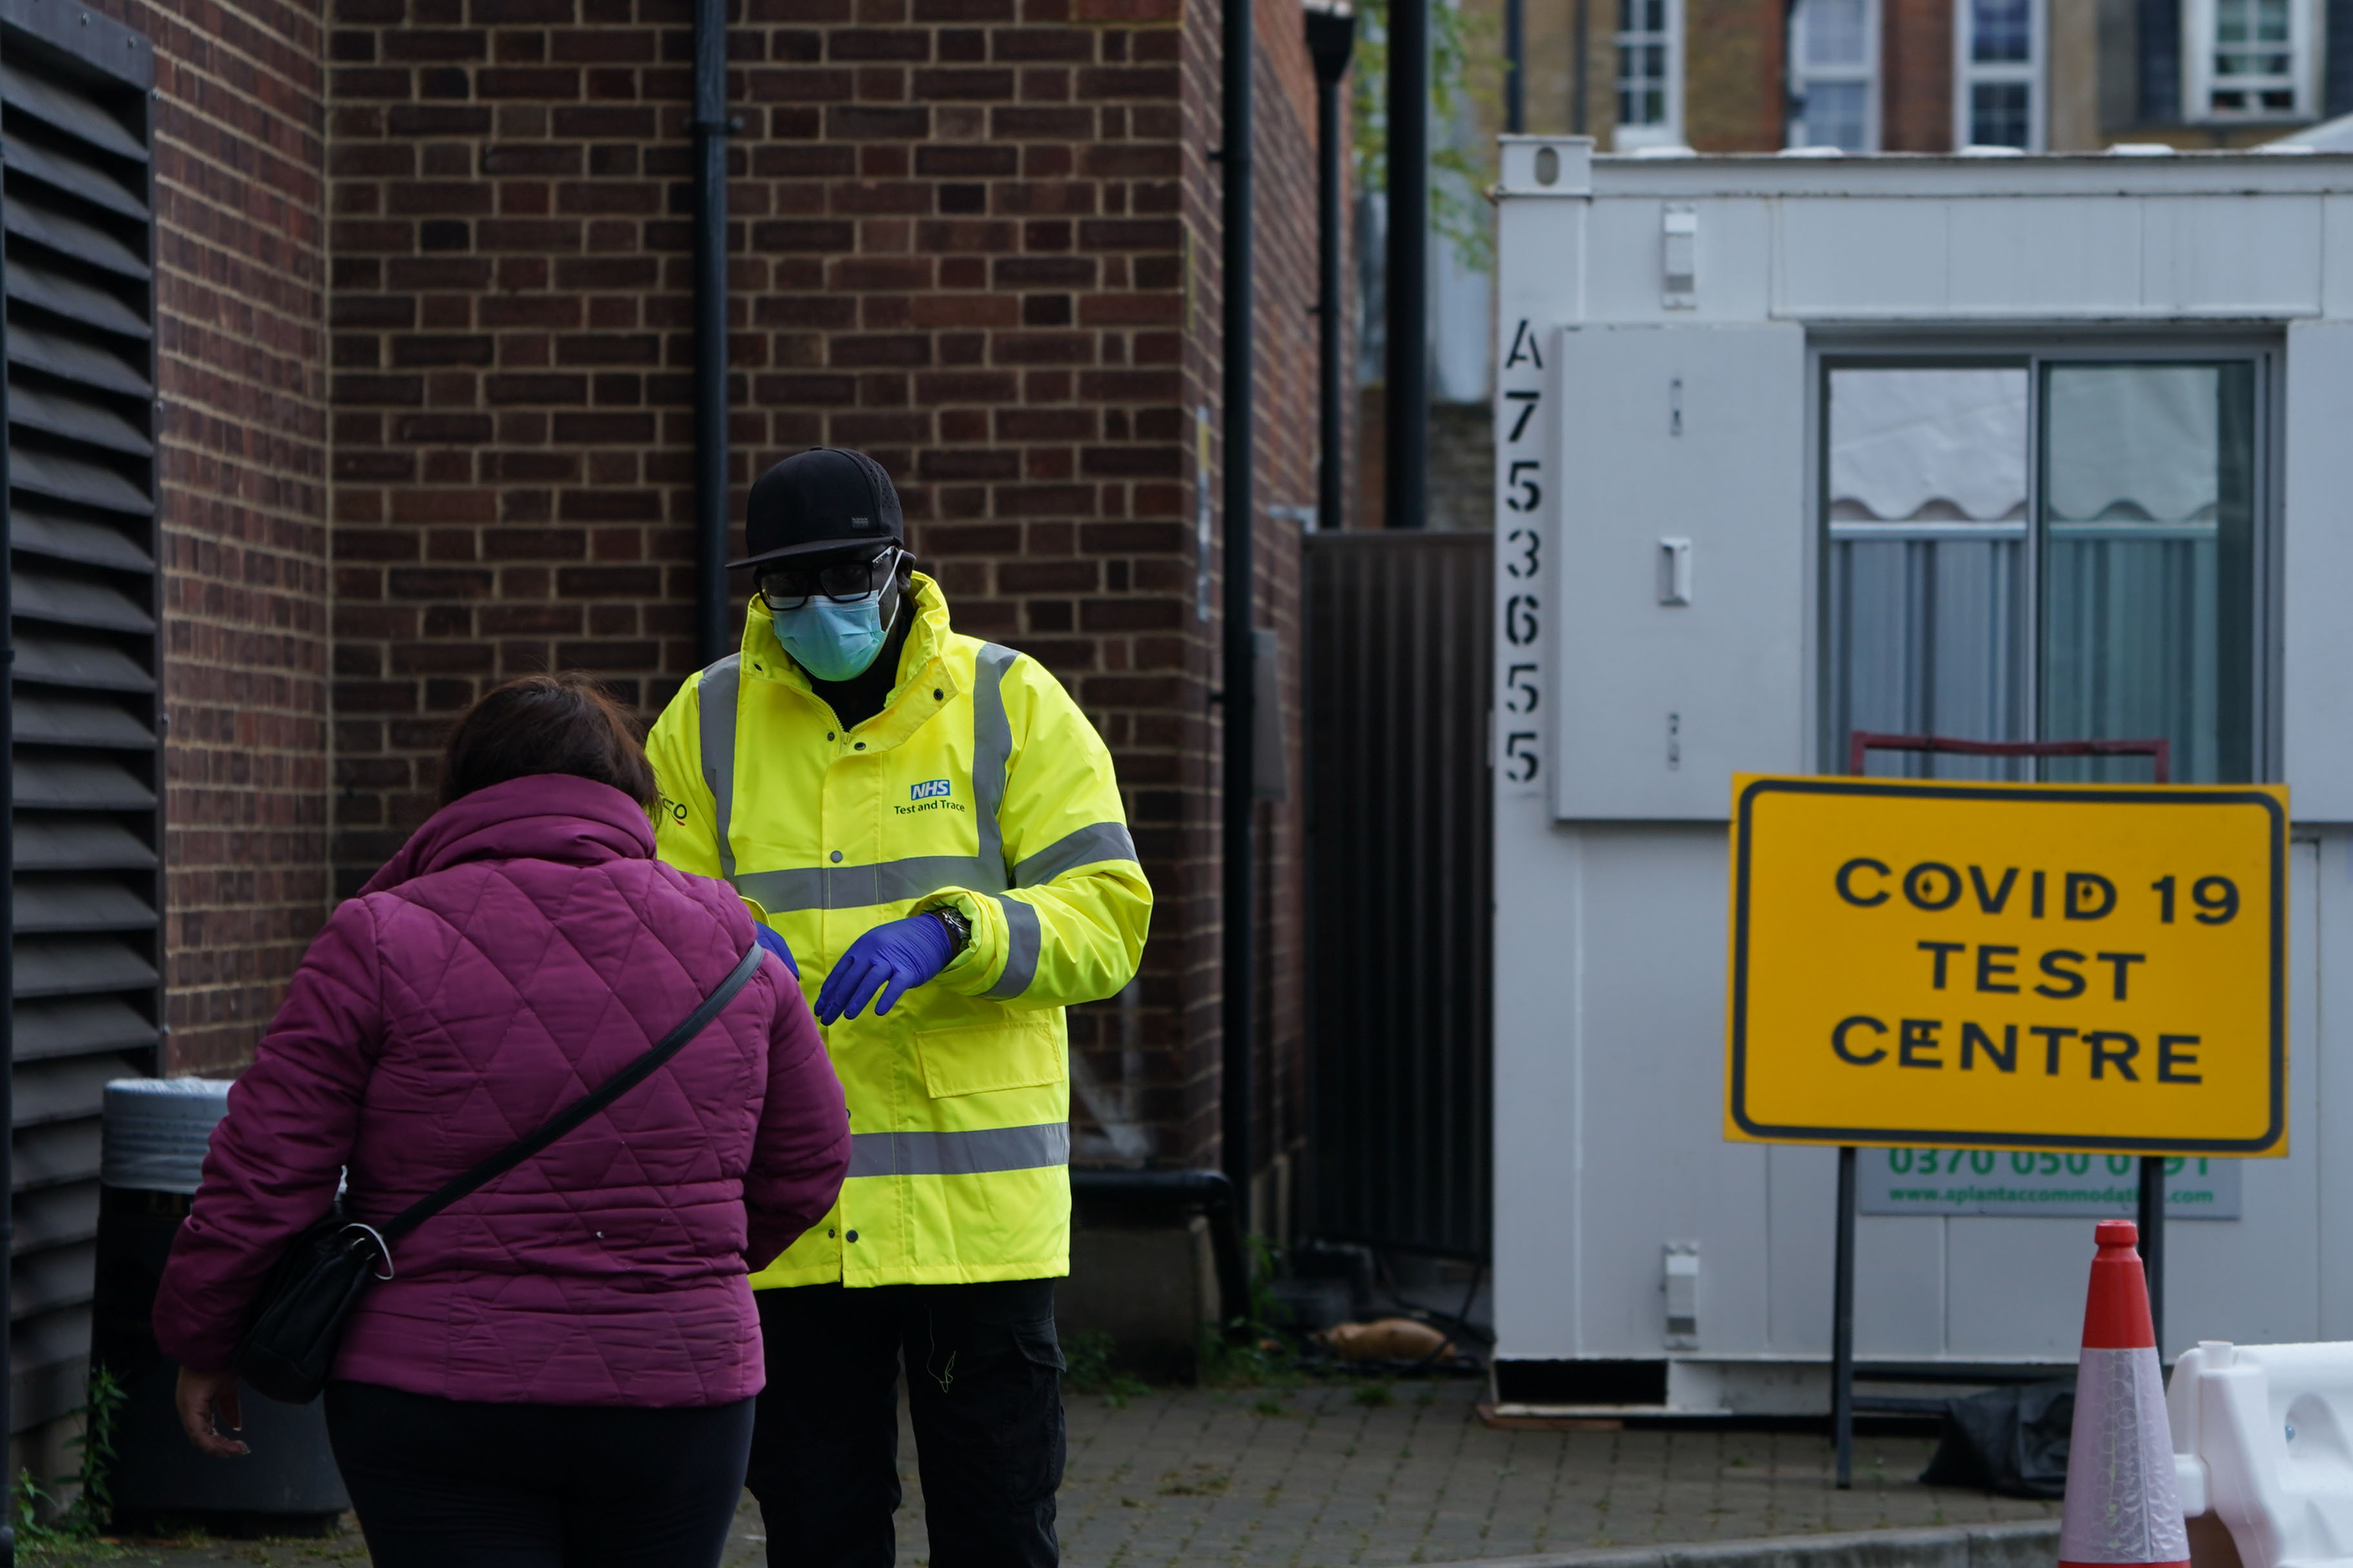 A NHS employee speaks to a member of the public outside a Covid-19 testing center in Dalston, east London, on September 23.